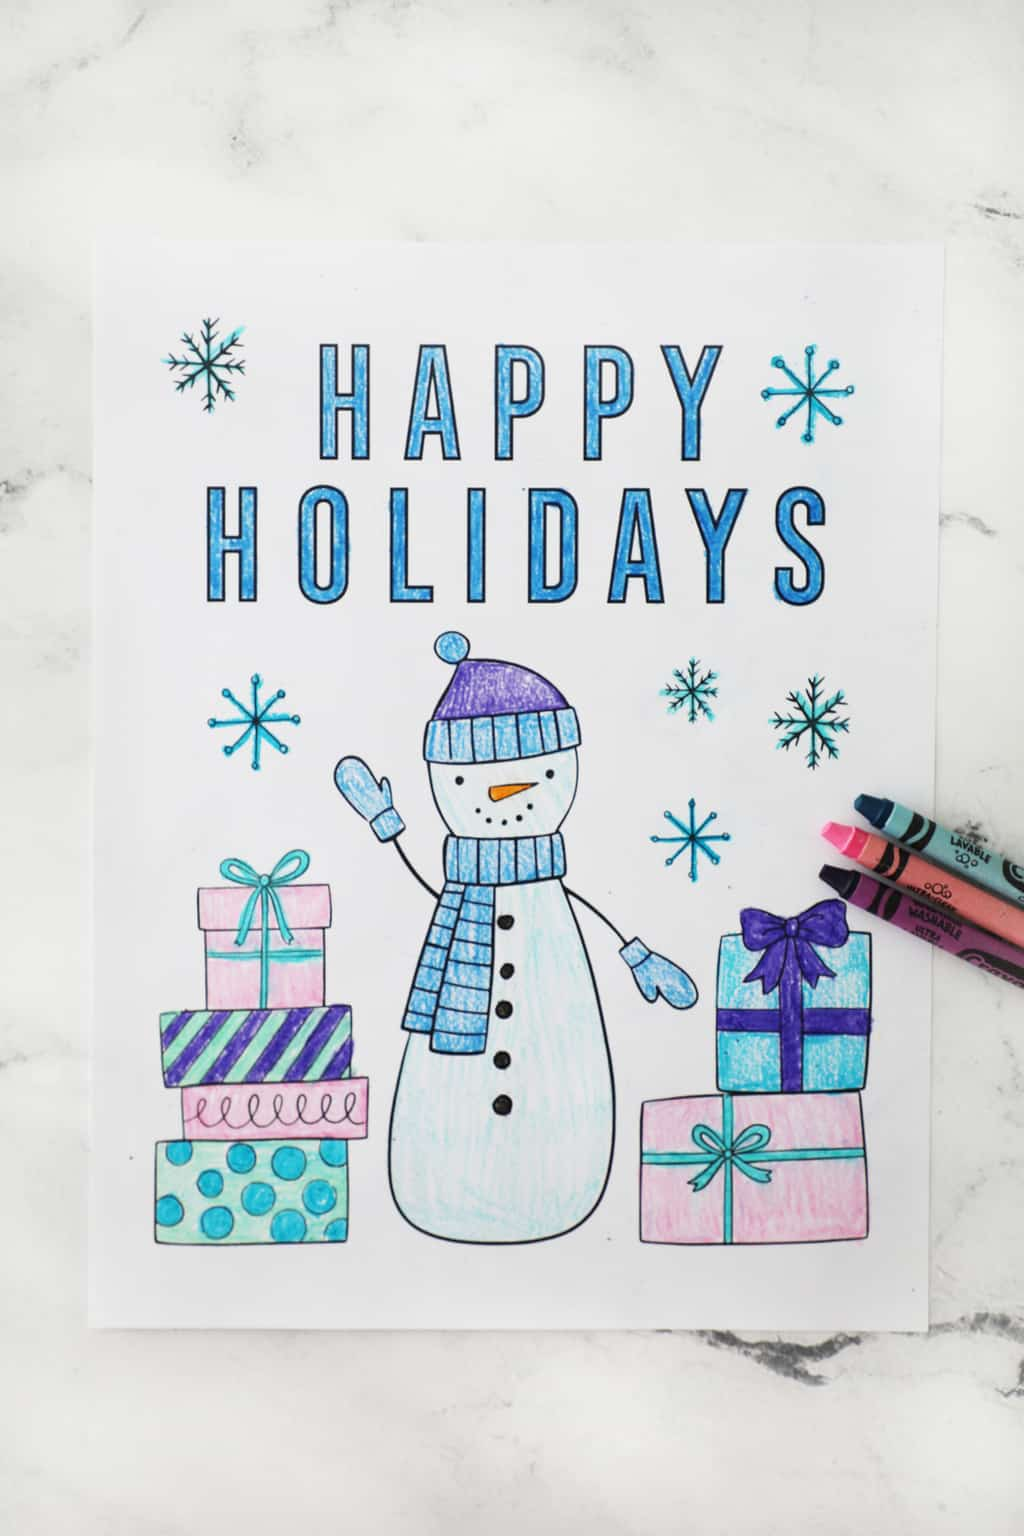 a snowman coloring page that says happy holidays next to some crayons